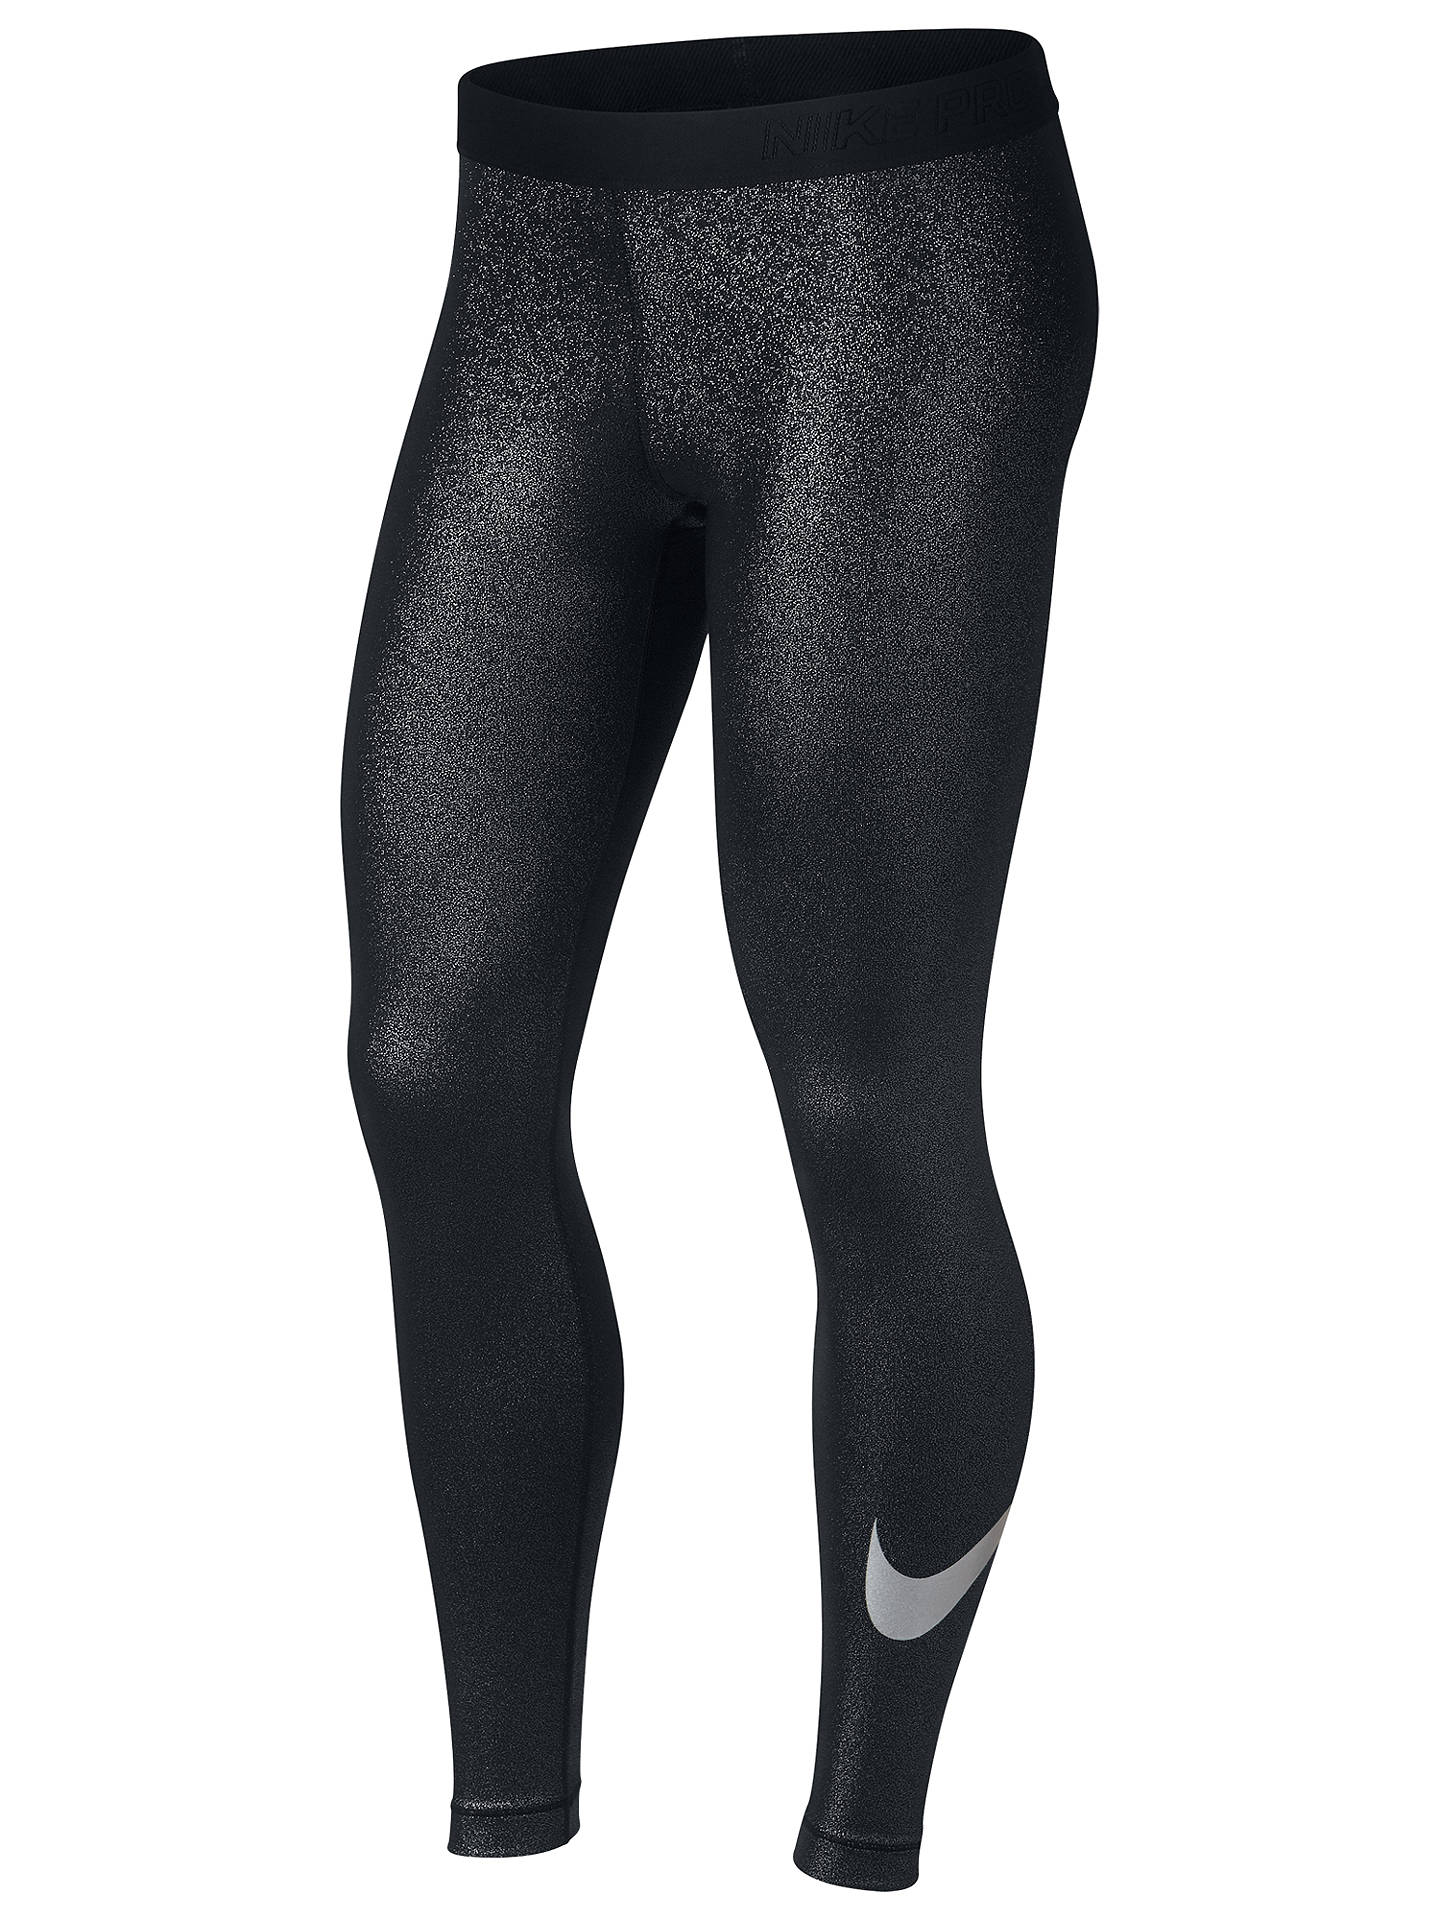 e05a49a5fee46 Buy Nike Pro Training Tights, Black/Metallic, XS Online at johnlewis.com ...